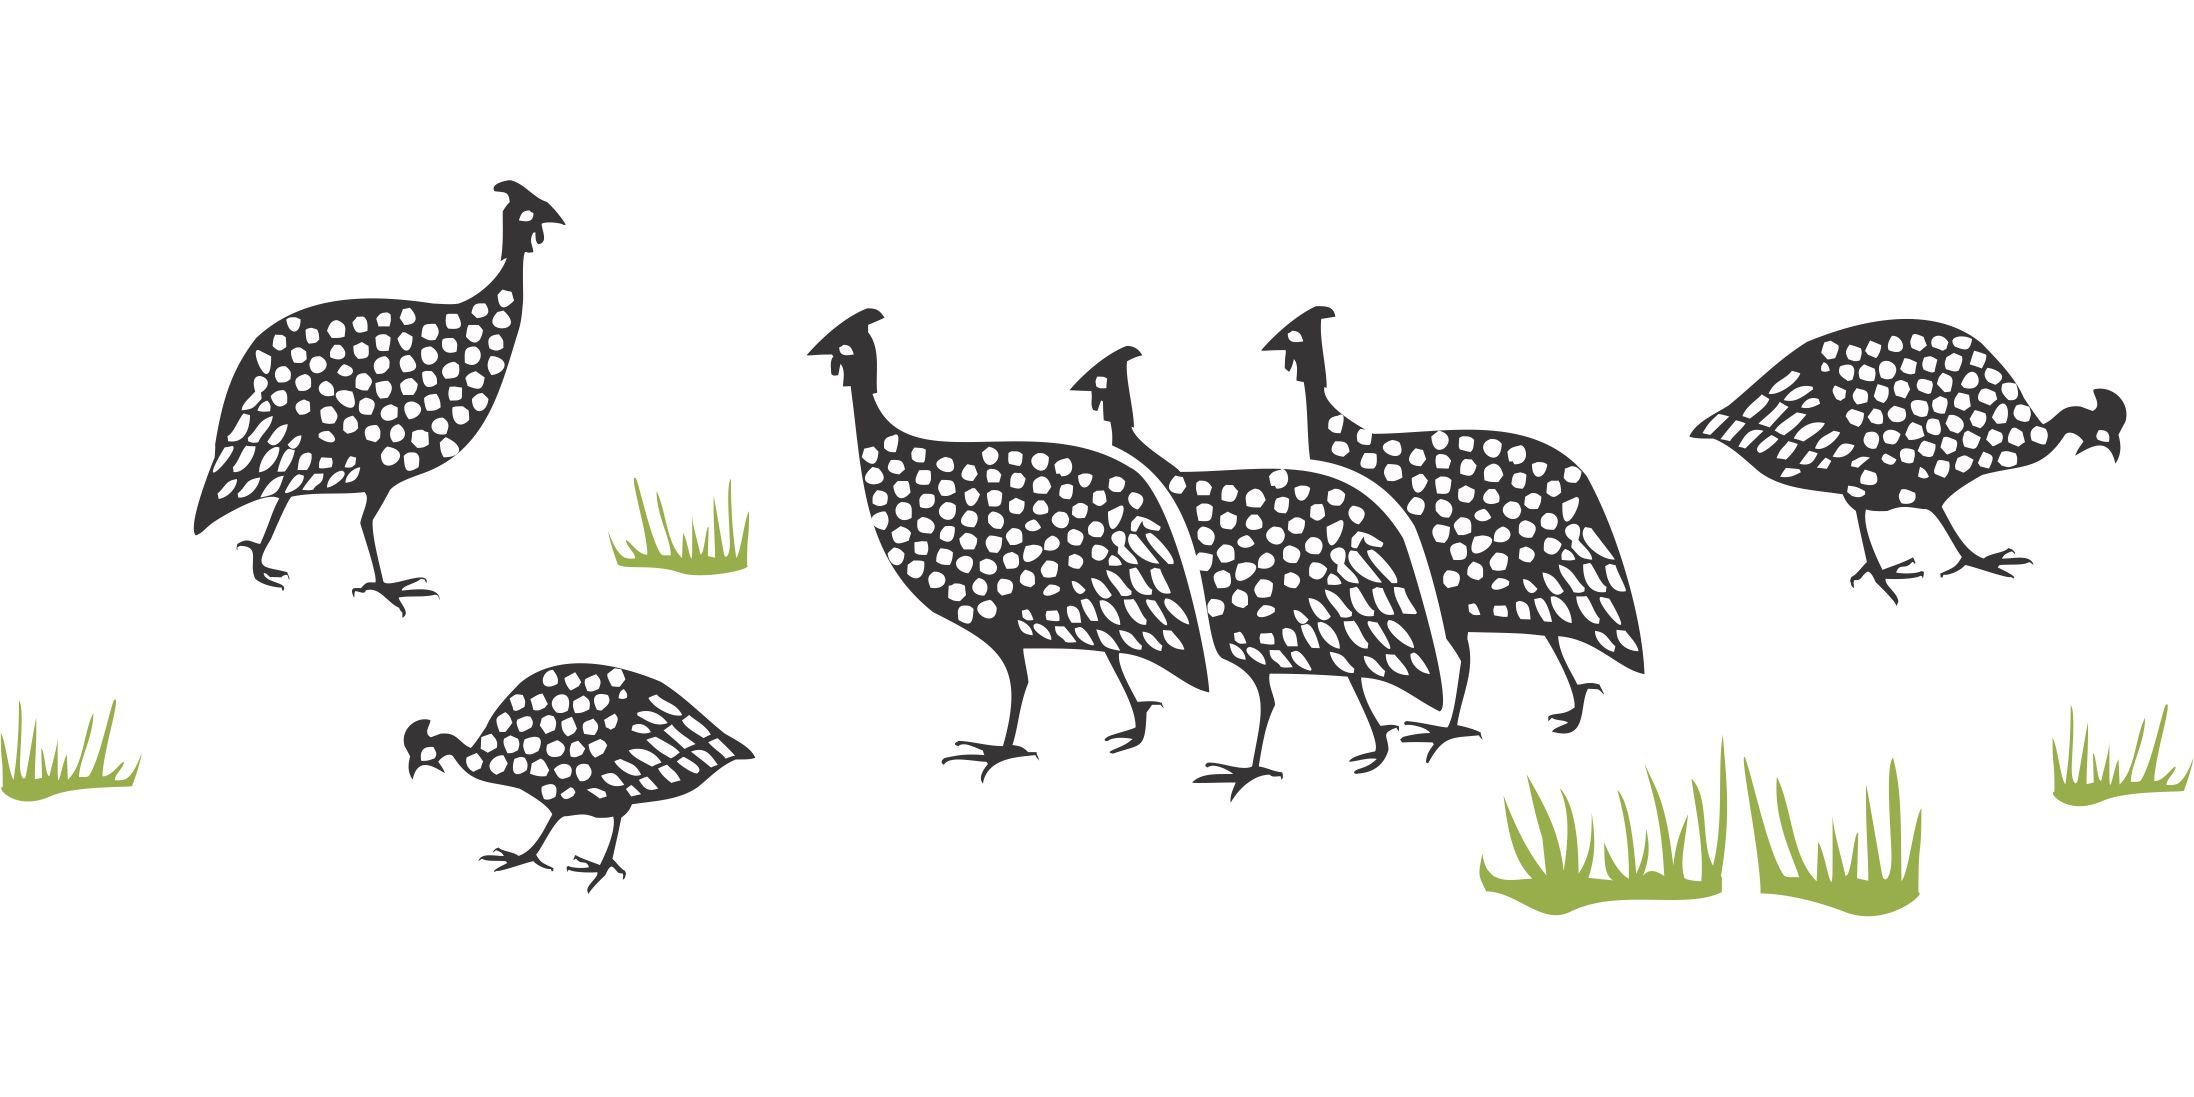 Guinea Fowl Stencil - (size 18''w x 6.5''h) Reusable Wall Stencils for Painting - Best Quality African Wall Border Ideas - Use on Walls, Floors, Fabrics, Glass, Wood, Terracotta, and More... by Stencils for Walls